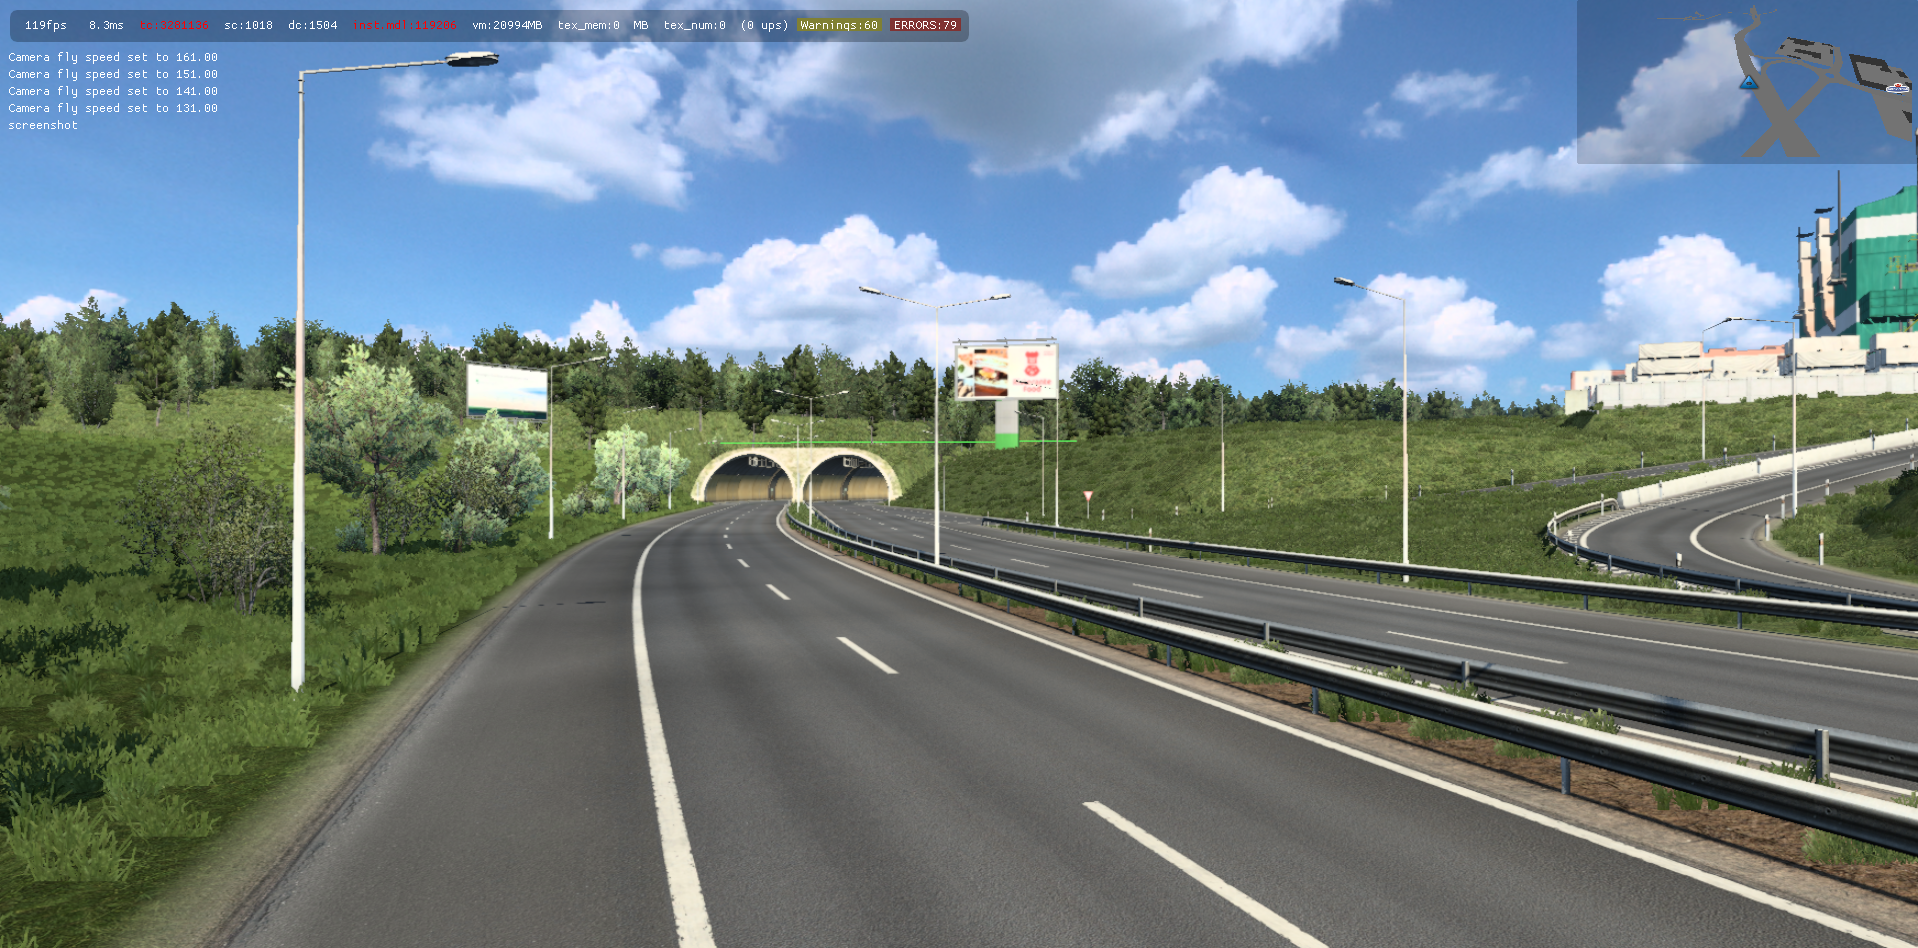 ets2_20210629_204558_00.png